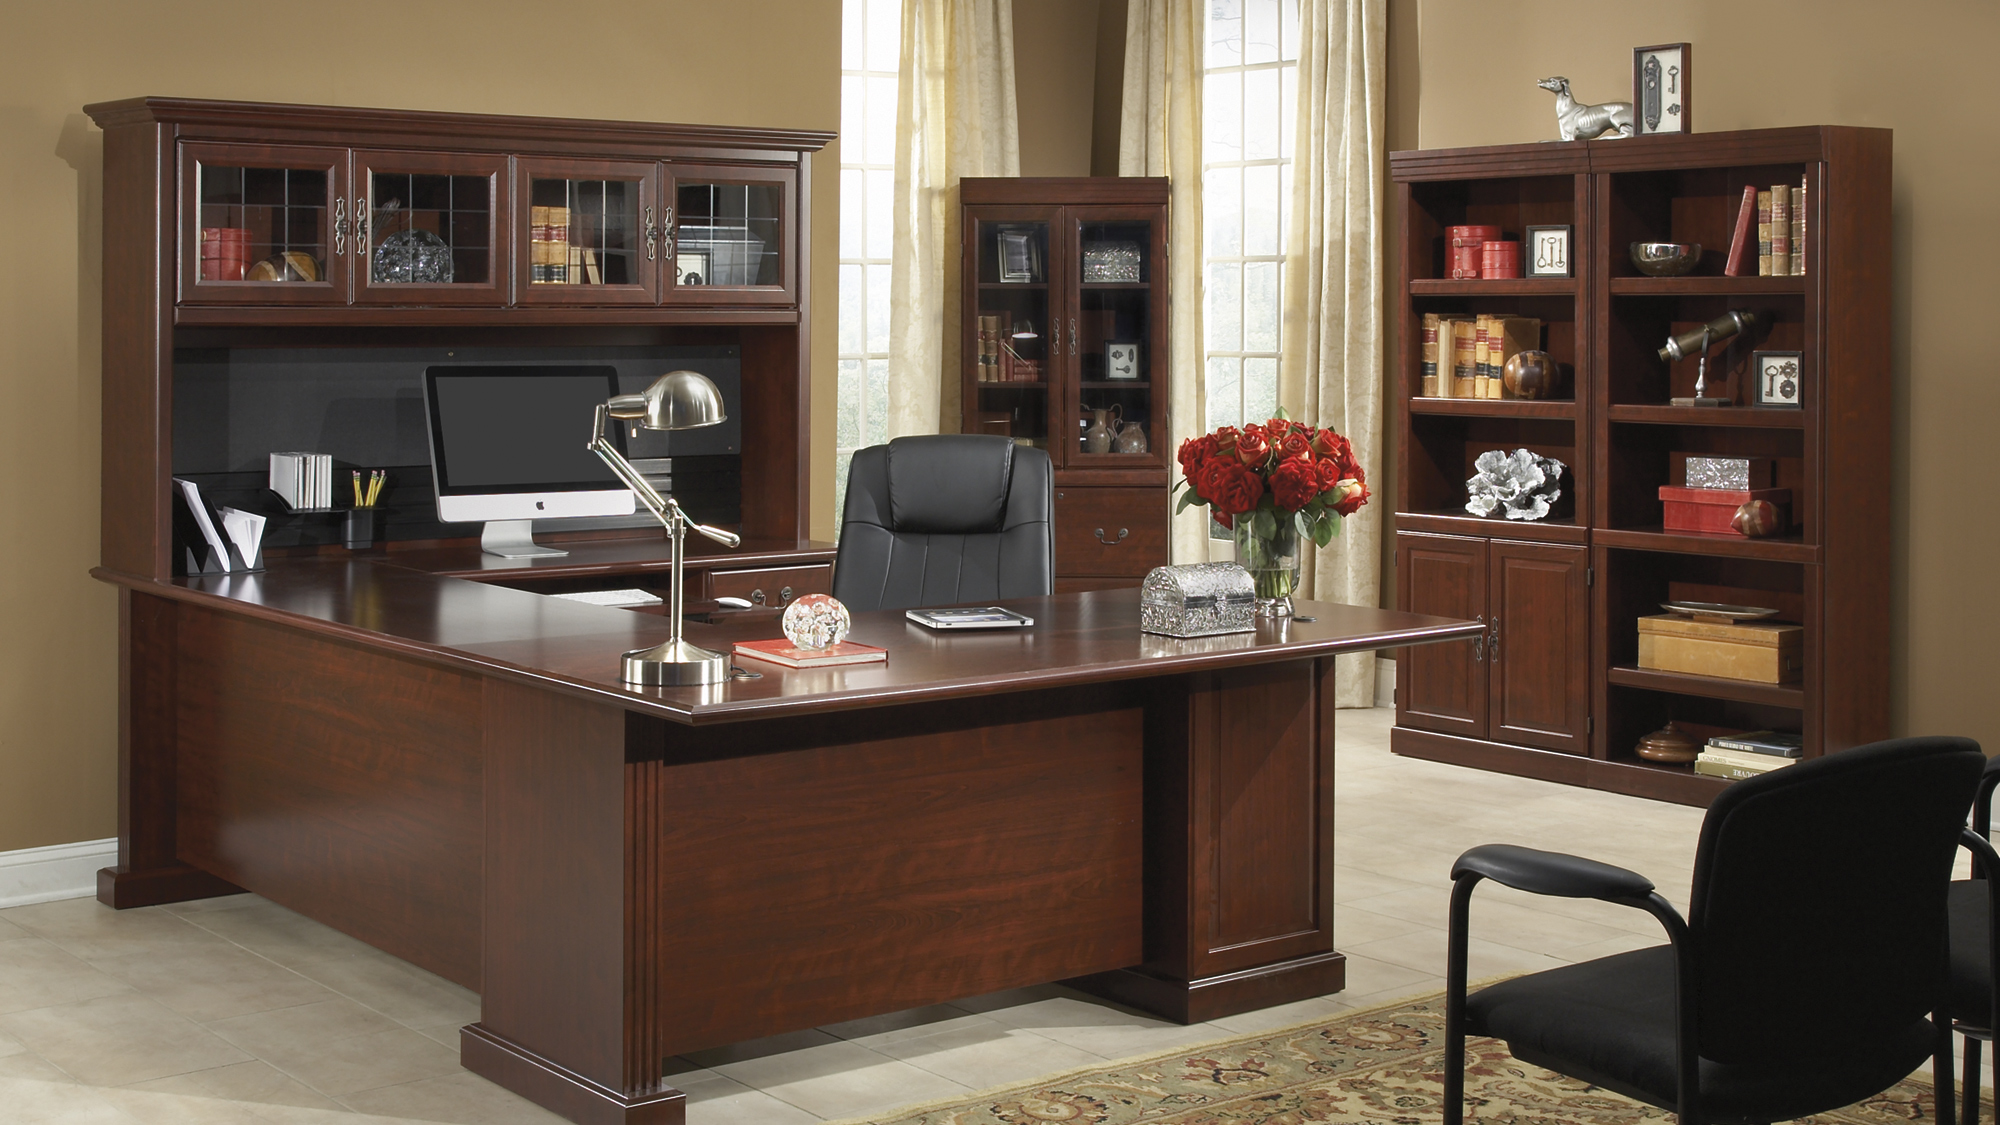 Home office furniture market emerging trends and global demand 2019 to 2025 honest version